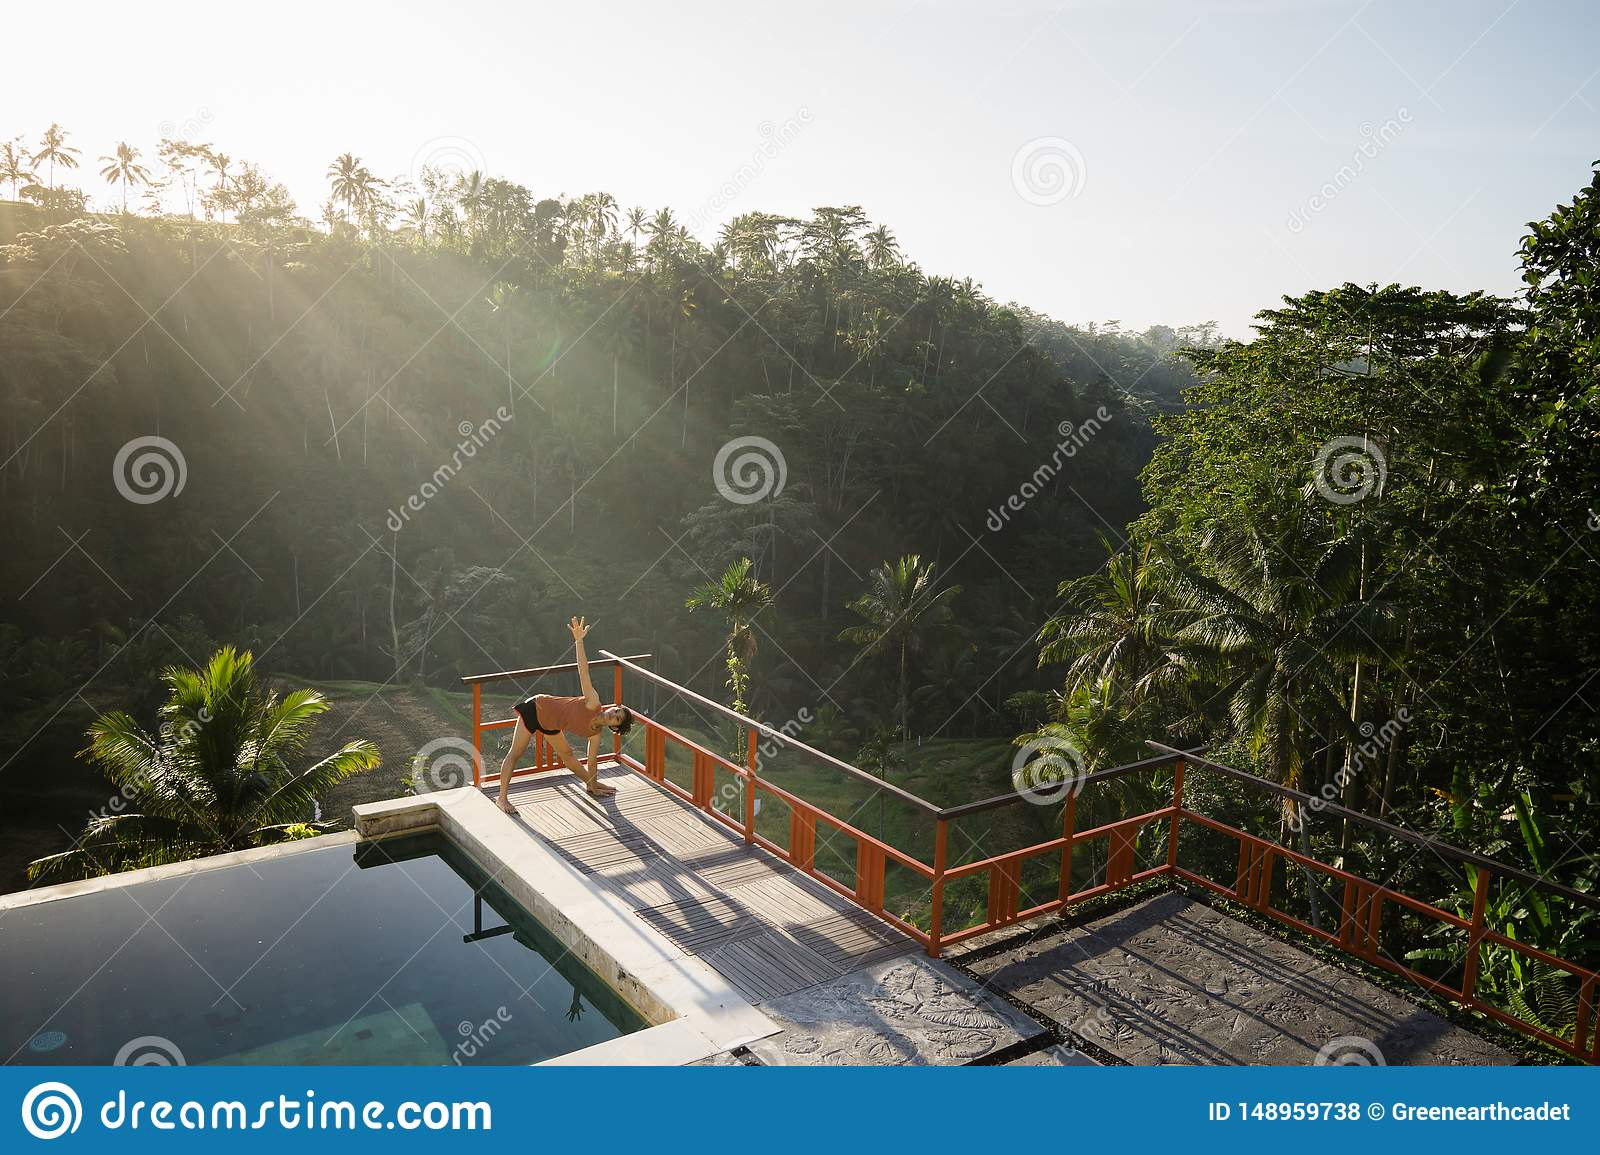 A model of a beautiful, short-haired and young woman doing yoga with Natarajasana poses by the pool with views of rice fields and